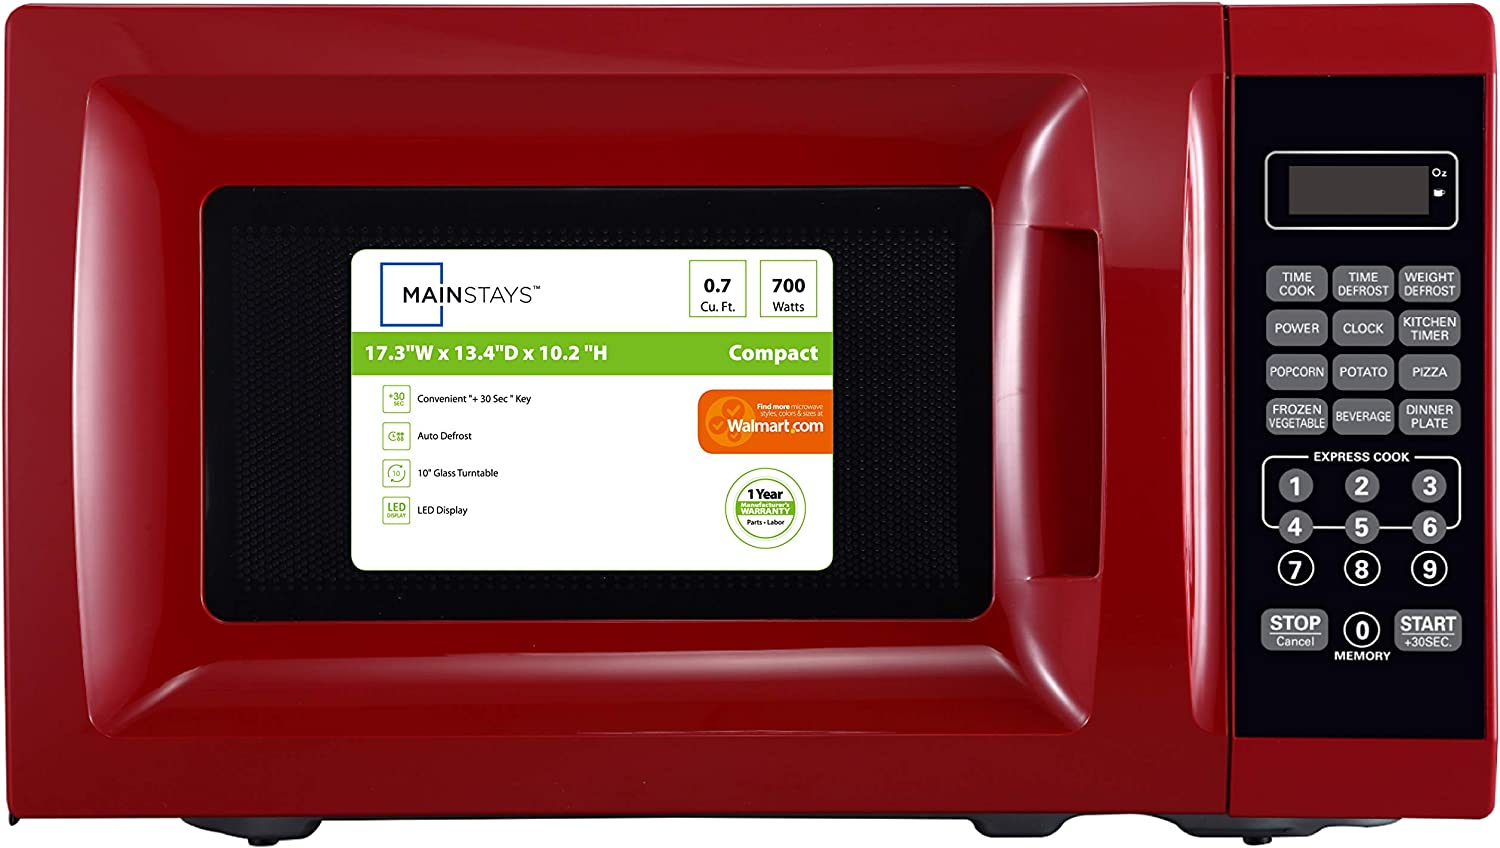 700W Red Microwave with 10 Power Levels Ft Mainstays 0.7 Cu